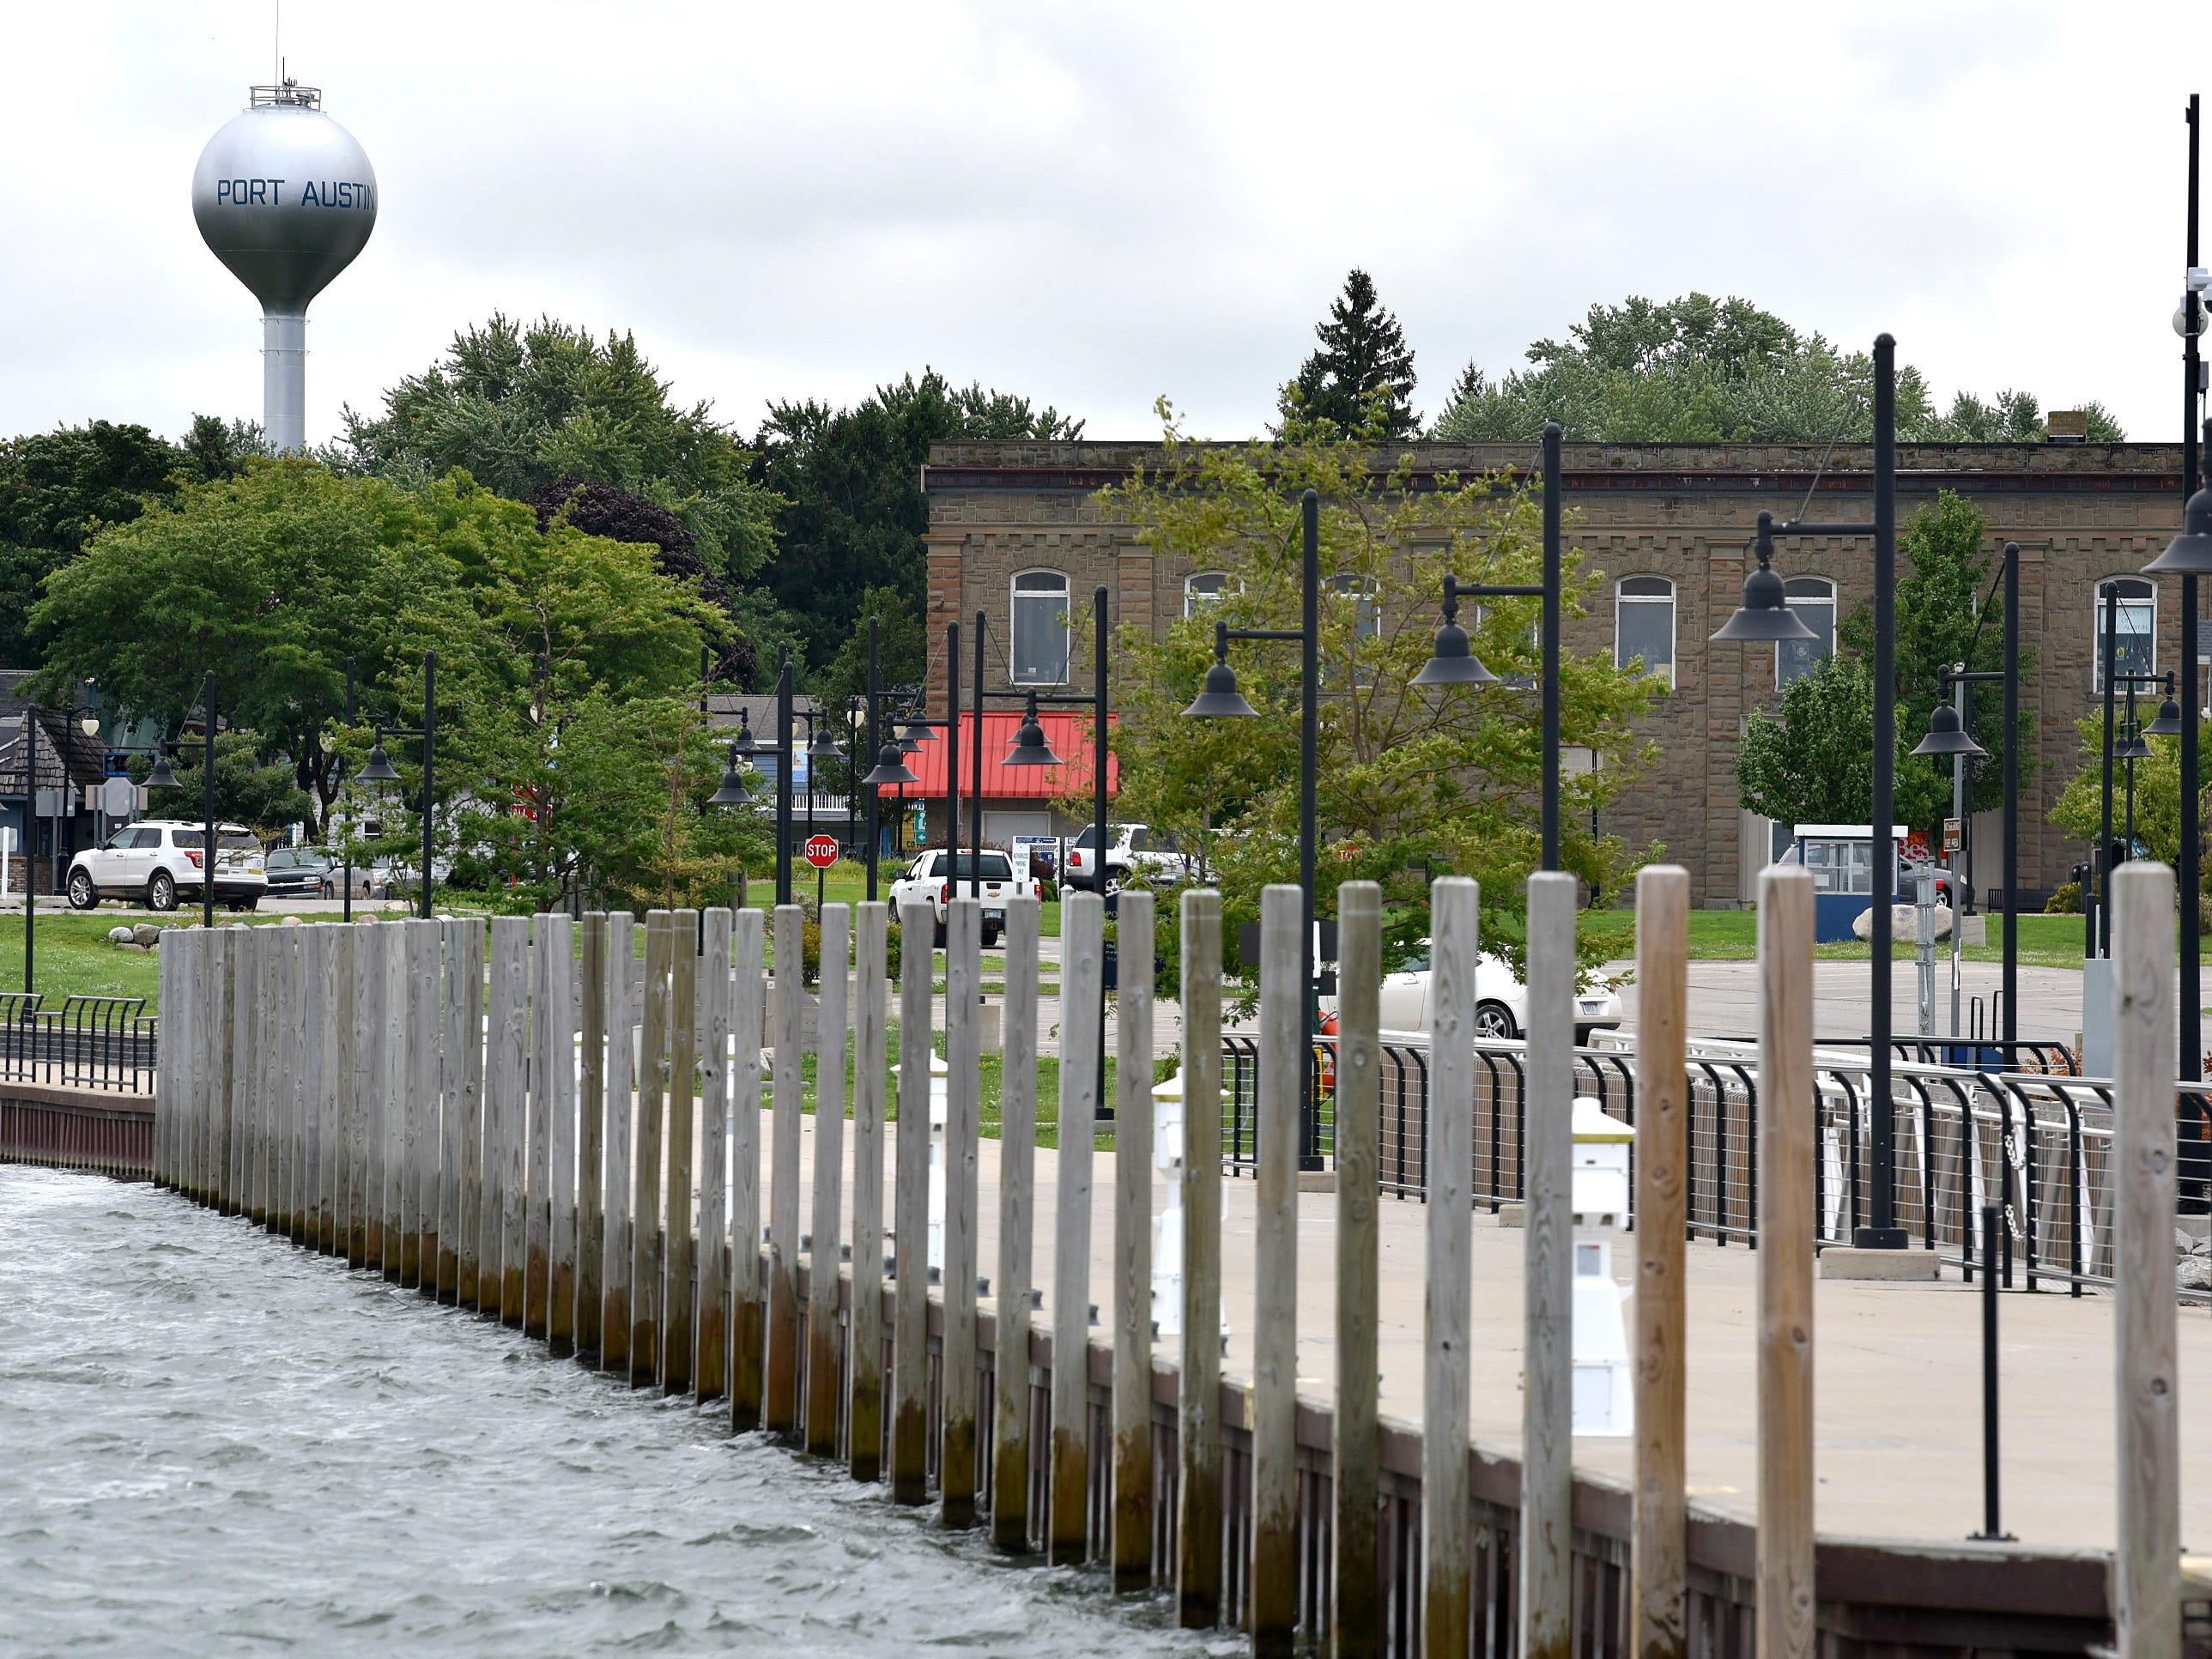 These are mooring poles along a walkway at the Port Austin State Harbor.